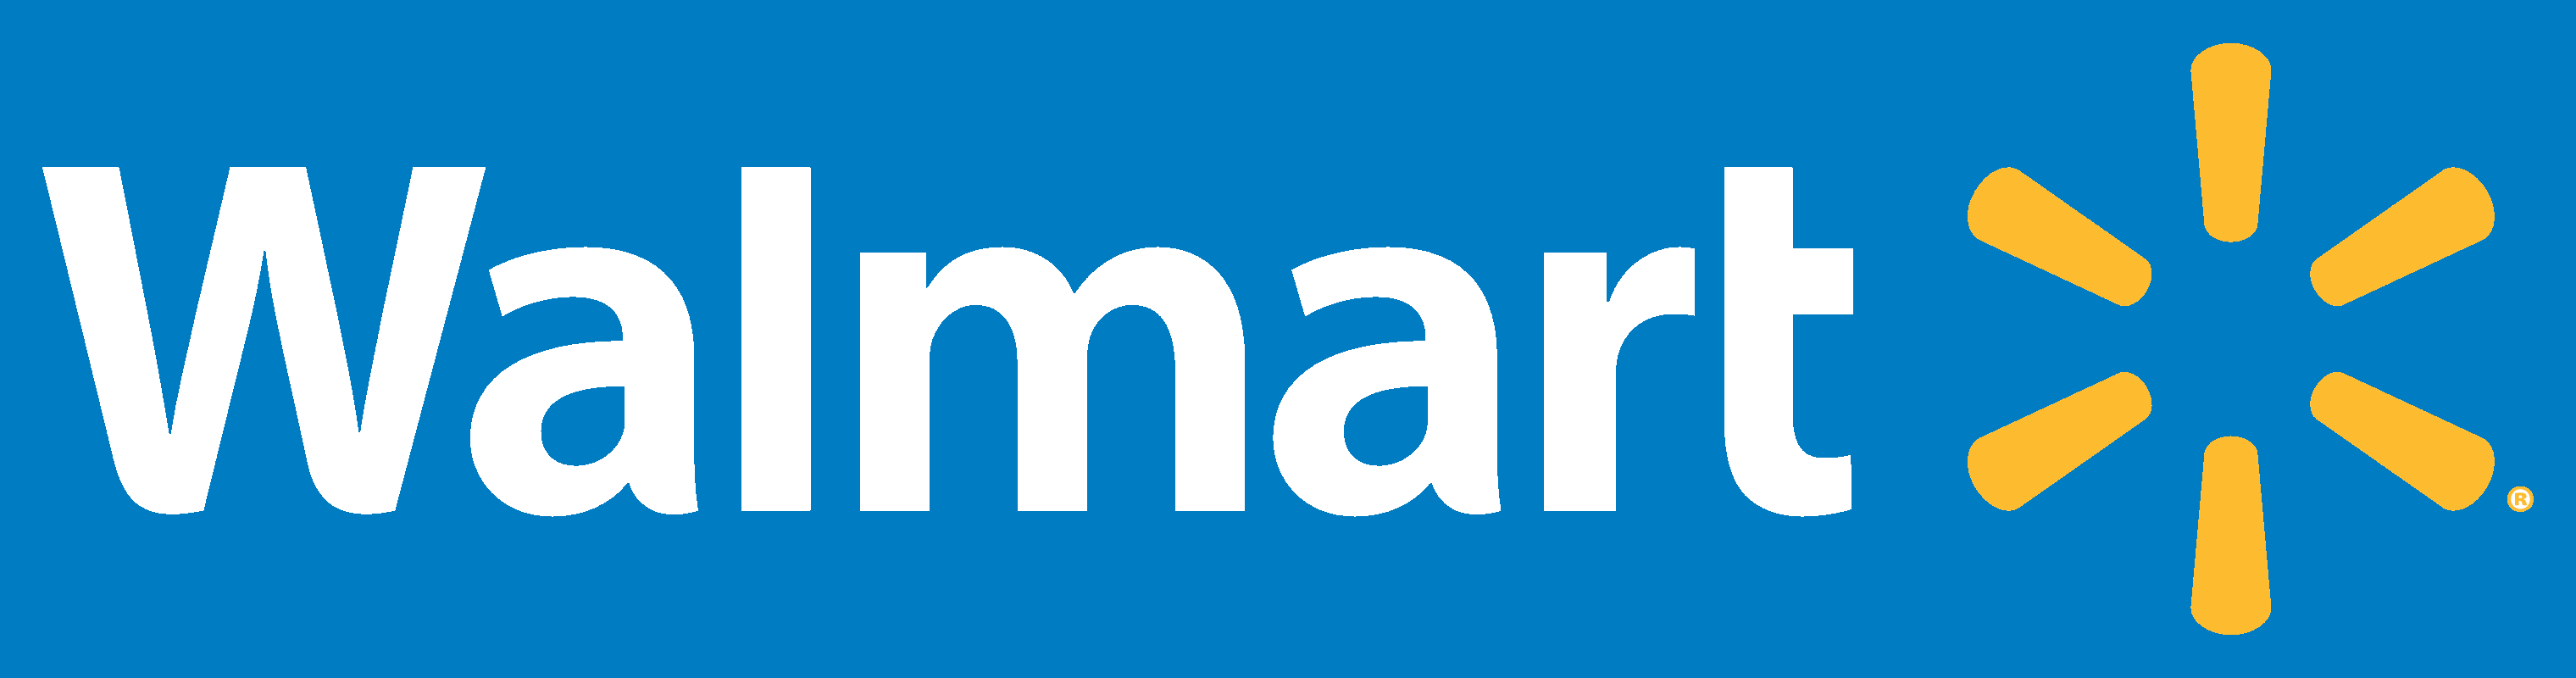 Walmart Logos Download